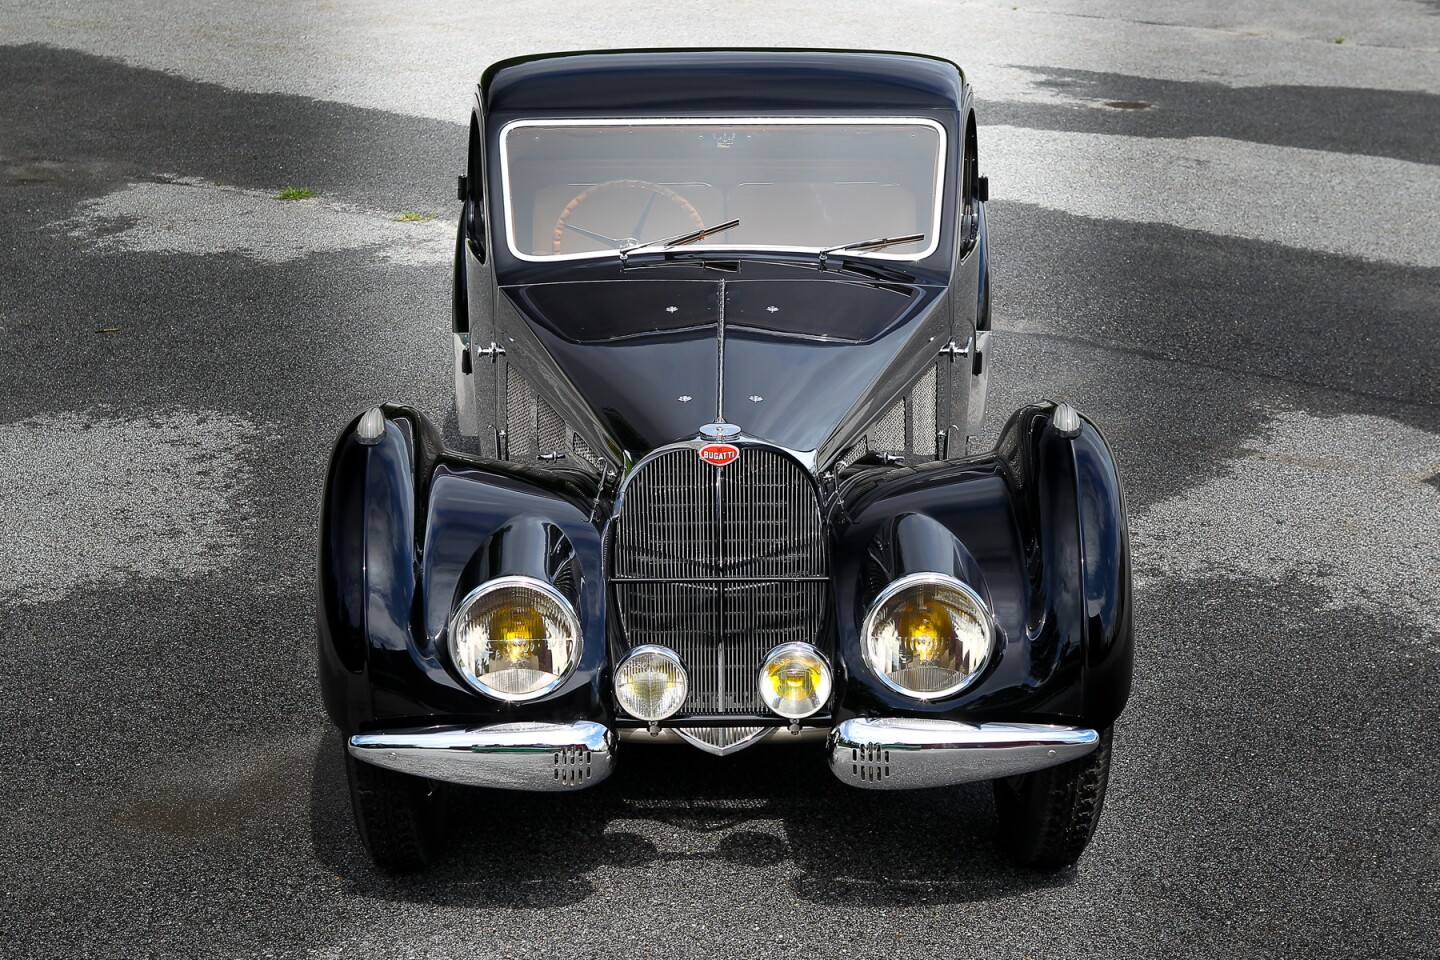 This 1937 Bugatti Type 57SC Atalante has an inline eight-cylinder engine making around 200 horsepower. Its pre-sale estimate is in the neighborhood of between $9 million and $11 million.